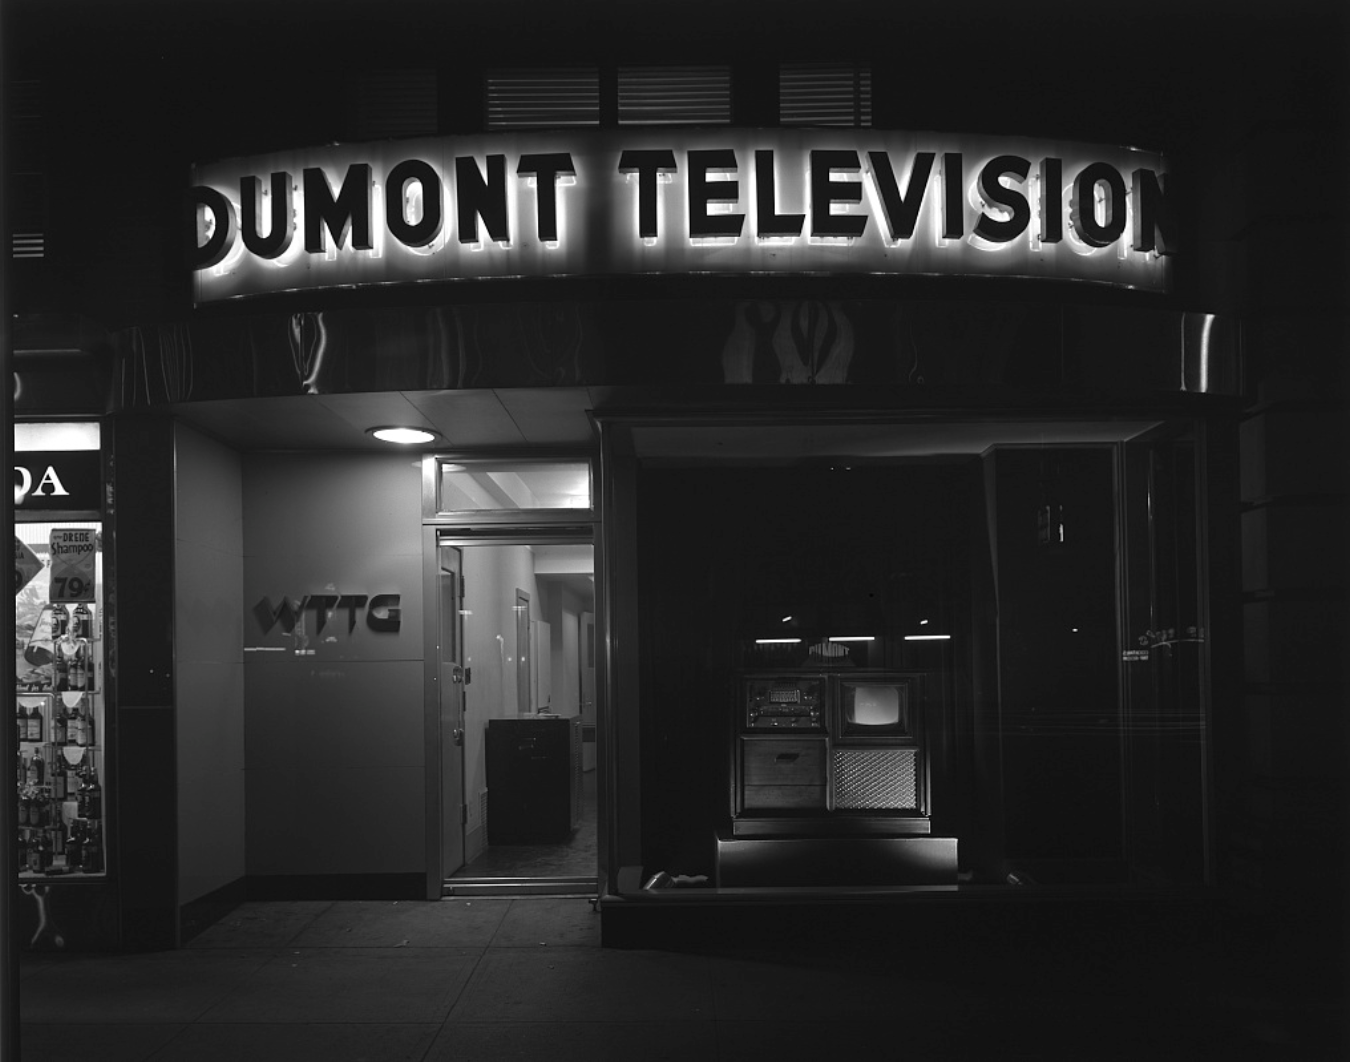 WTTG television station headquarters at Raleigh Hotel, 12th Street and E Street, N.W., Washington, D.C. Horydczak, Theodor, Approximately, photographer. Griffith Consumers Co. Exterior of Dumont Television, 12th St. Washington D.C, 1948. Photograph. https://www.loc.gov/item/thc1995000397/PP/.